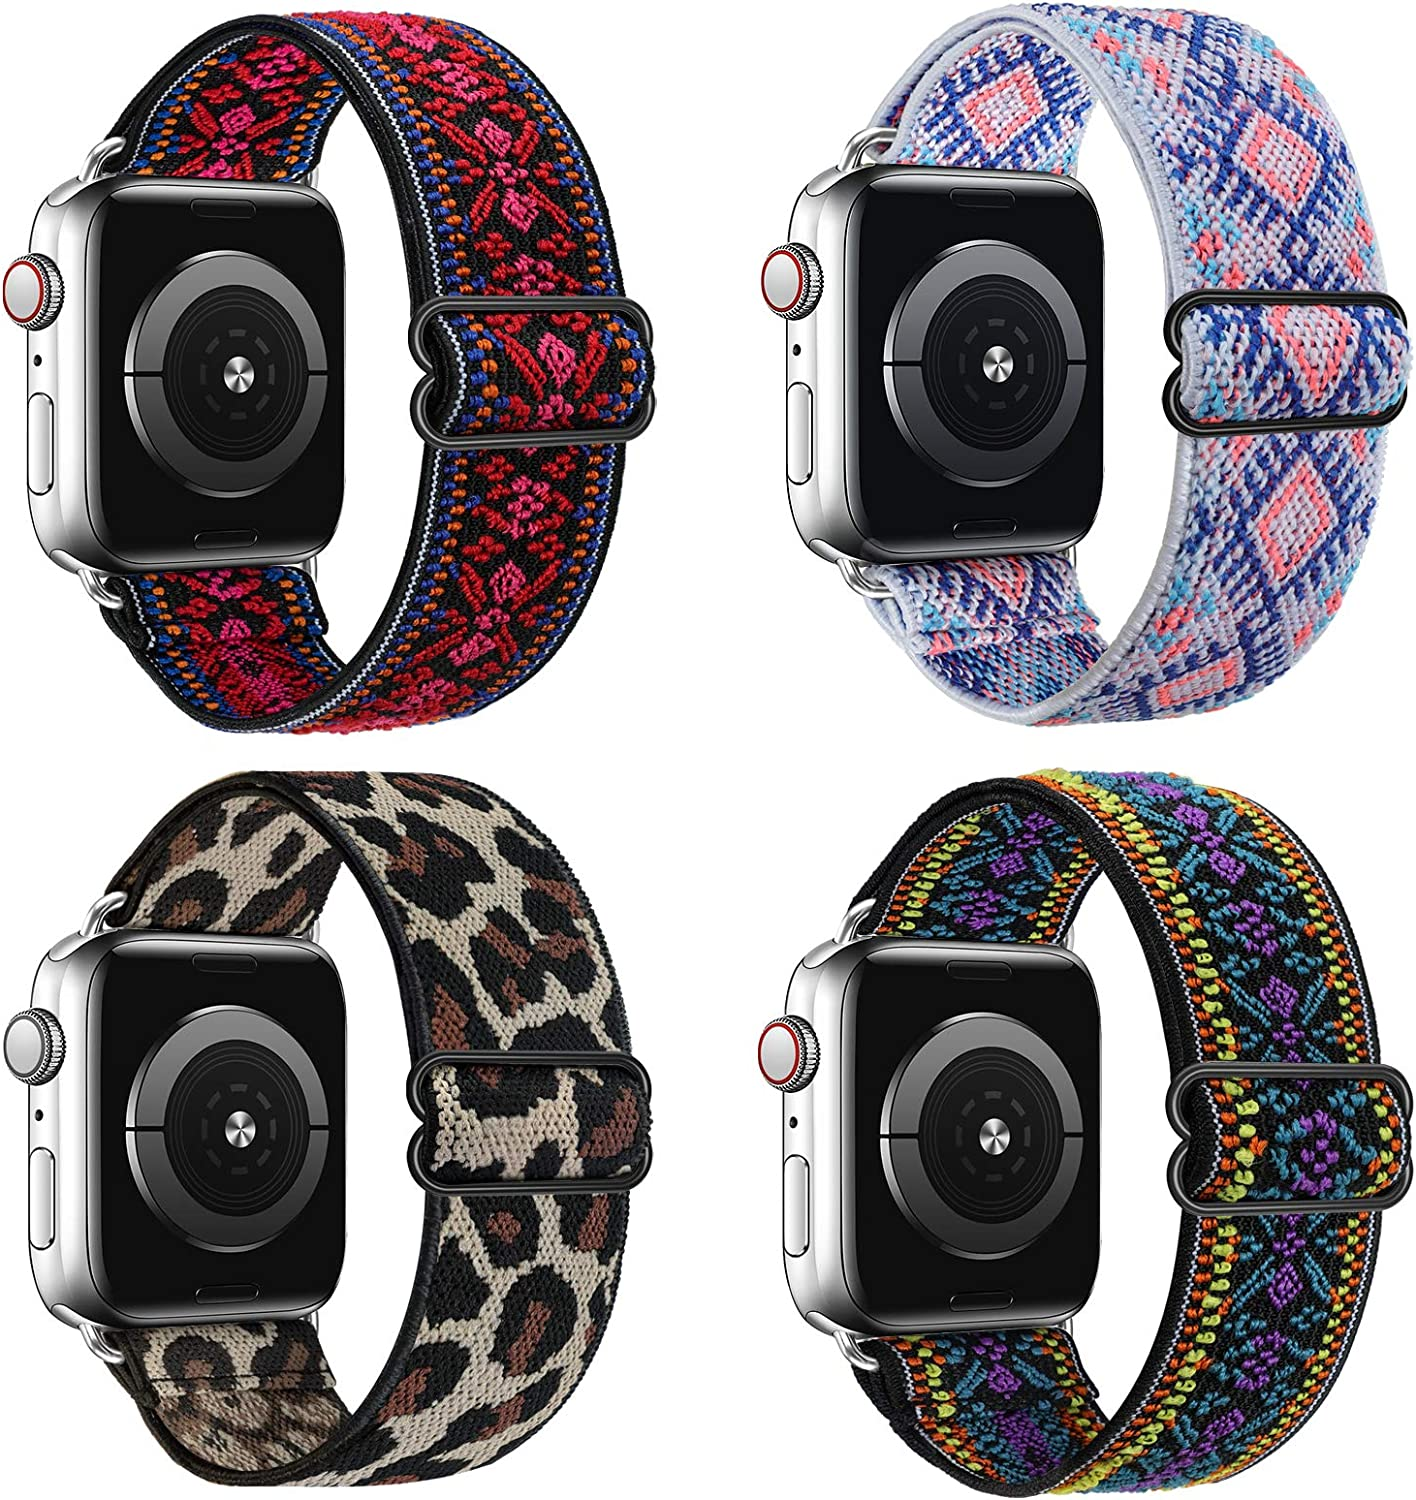 Huishang 4 Pack Adjustable Stretchy Solo Loop Band Compatible with Apple Watch Bands 38mm 42mm 40mm 44mm for Women, Boho Pattern Soft Strap Replacement Wristband for iWatch Series 6/5/4/3/2/1, SE